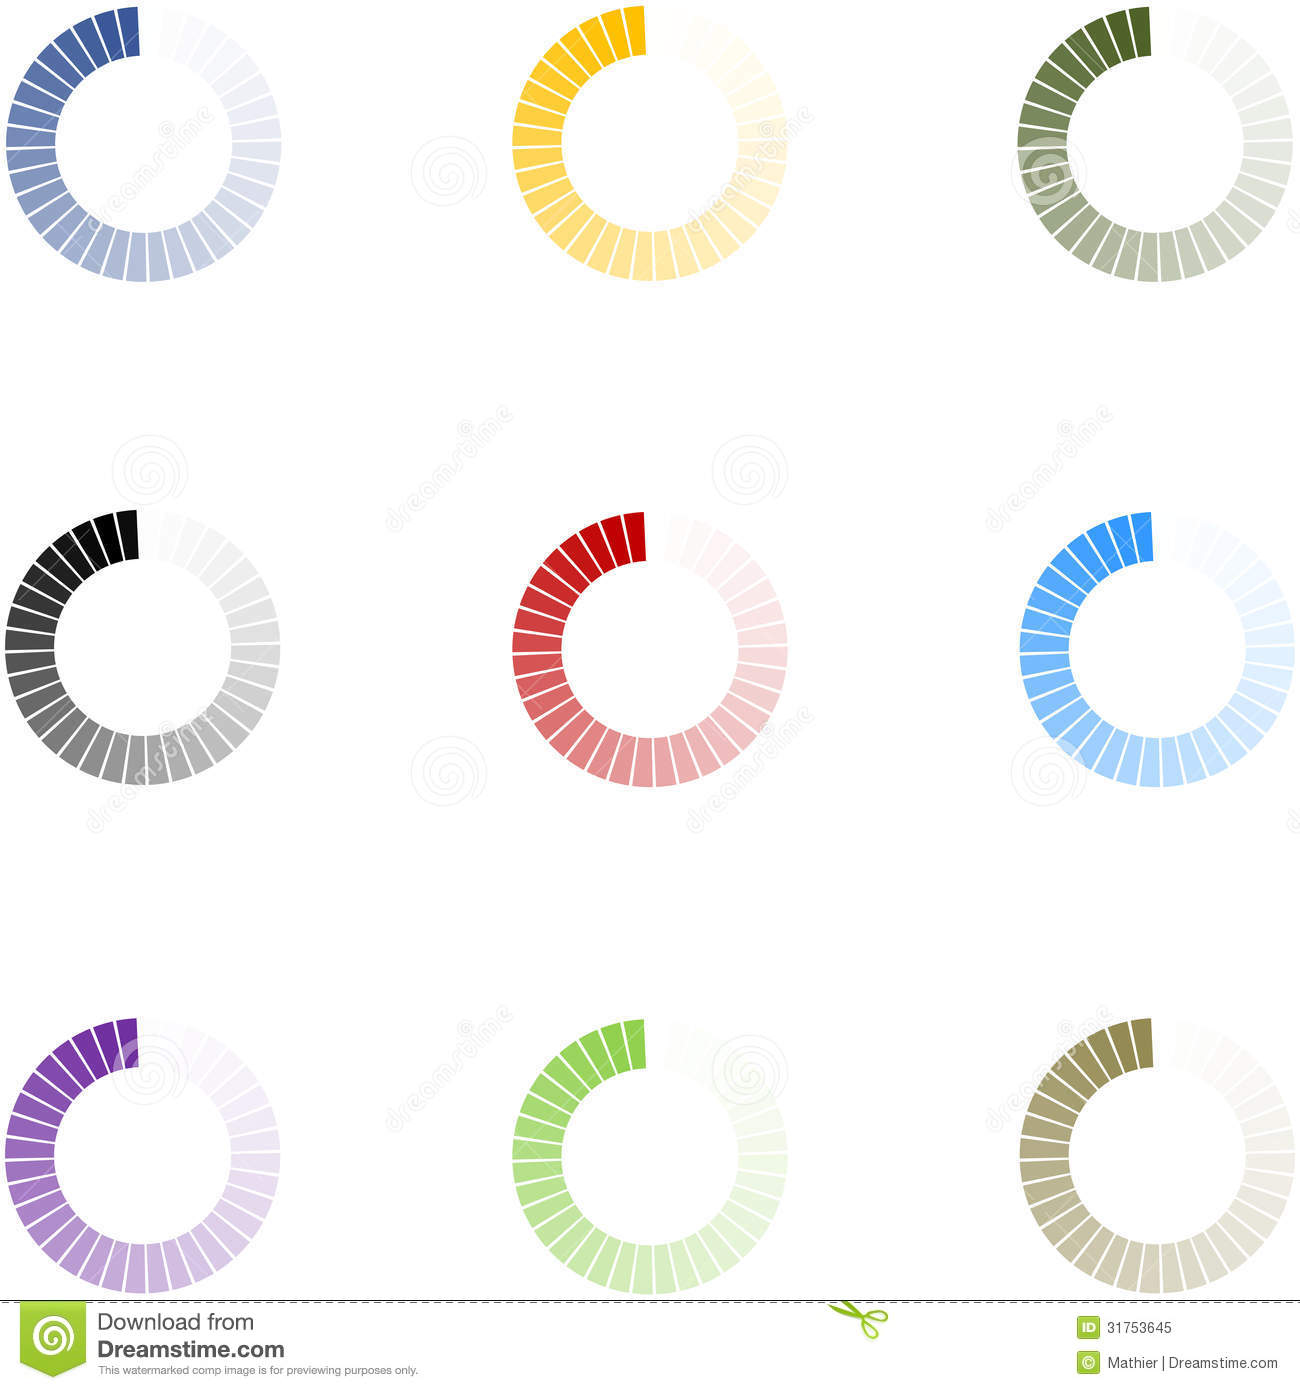 Loading Indicators Set 9 Colors - V1 Stock Image